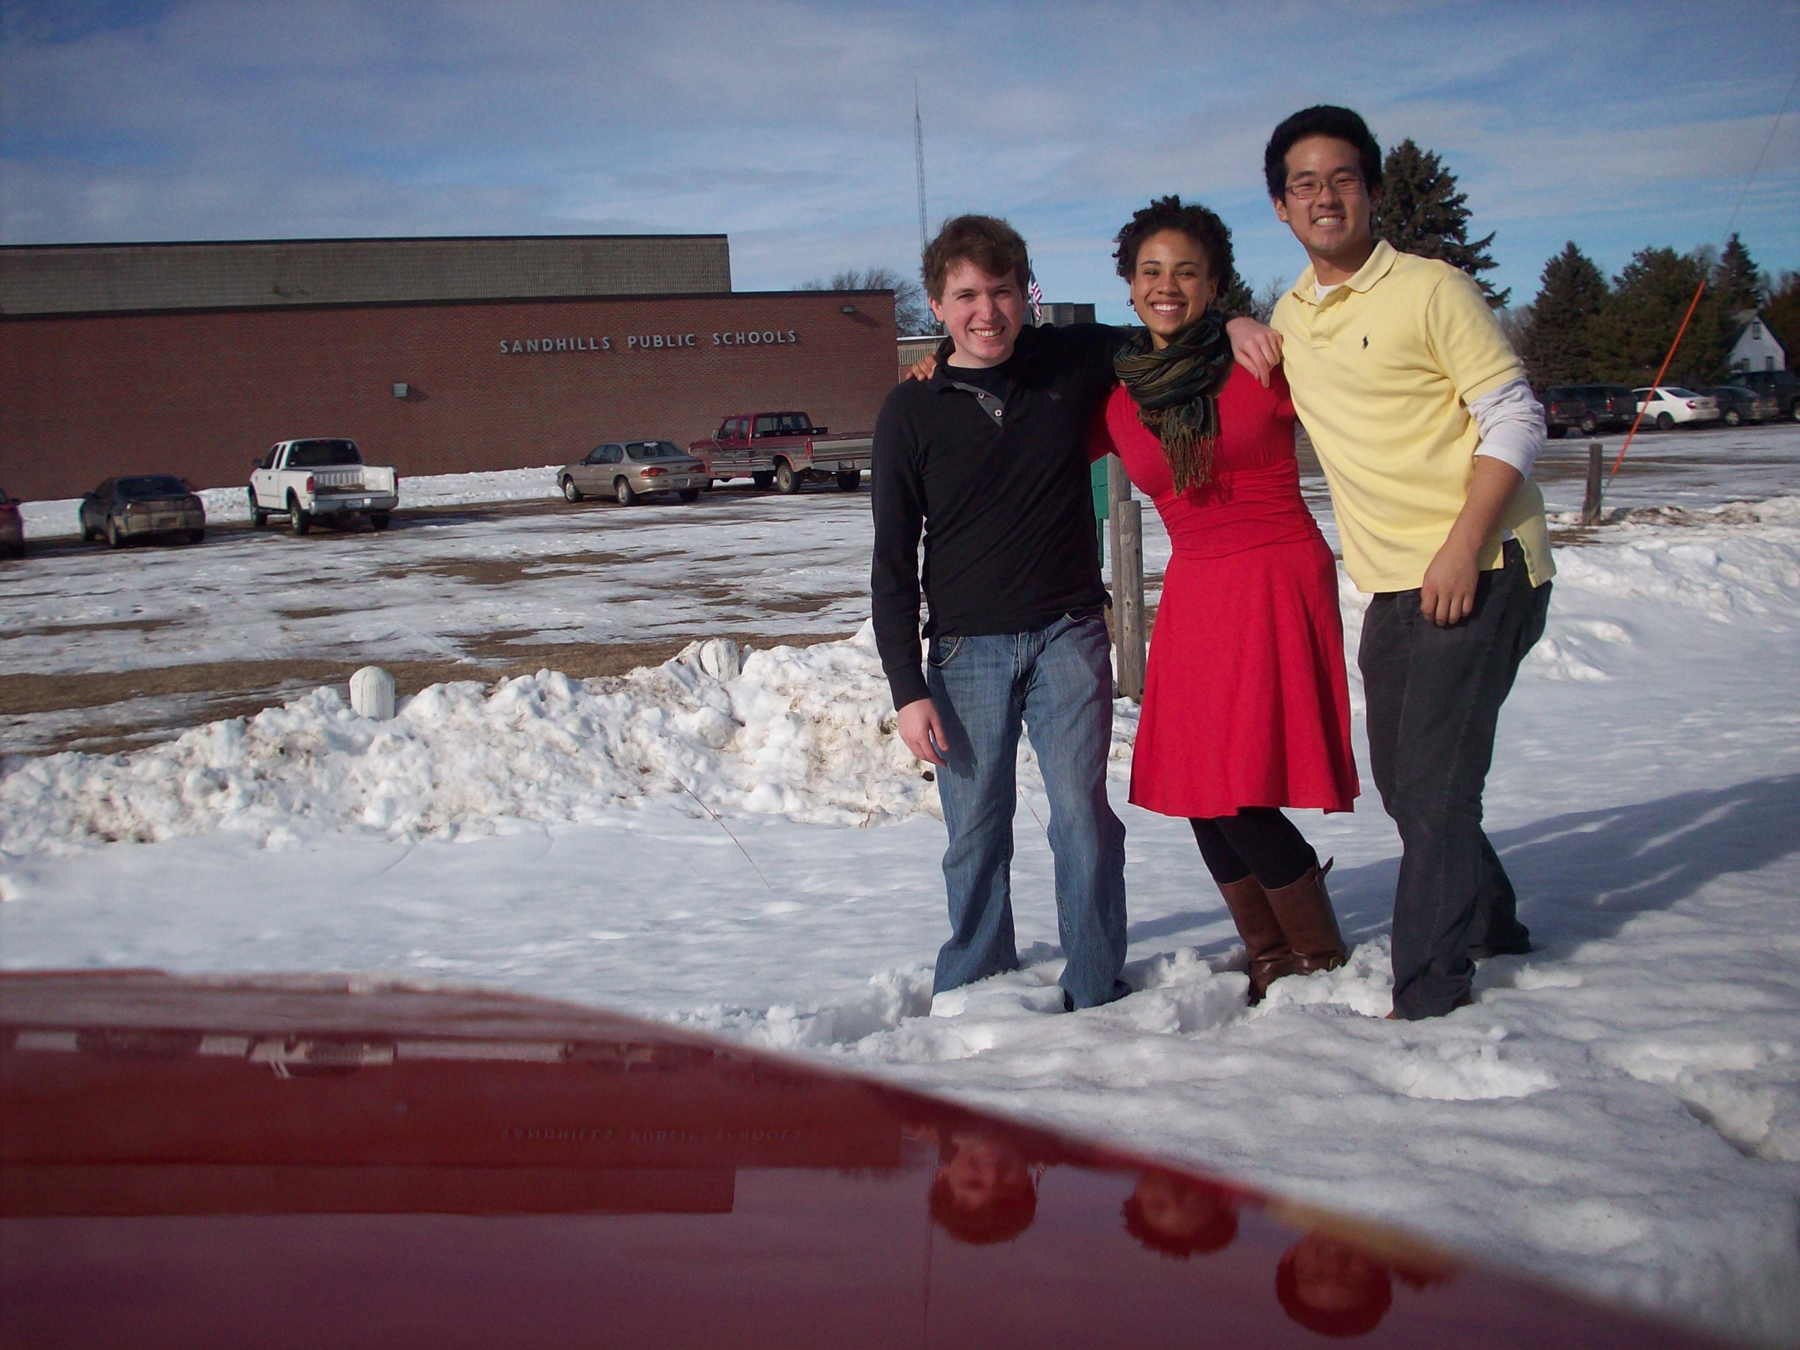 The Ezinma Trio outside Sandhills Public Schools in January. Pictured (from left) is Michael Glur-Zoucha, Meredith Ramsay and Timothy Paek.